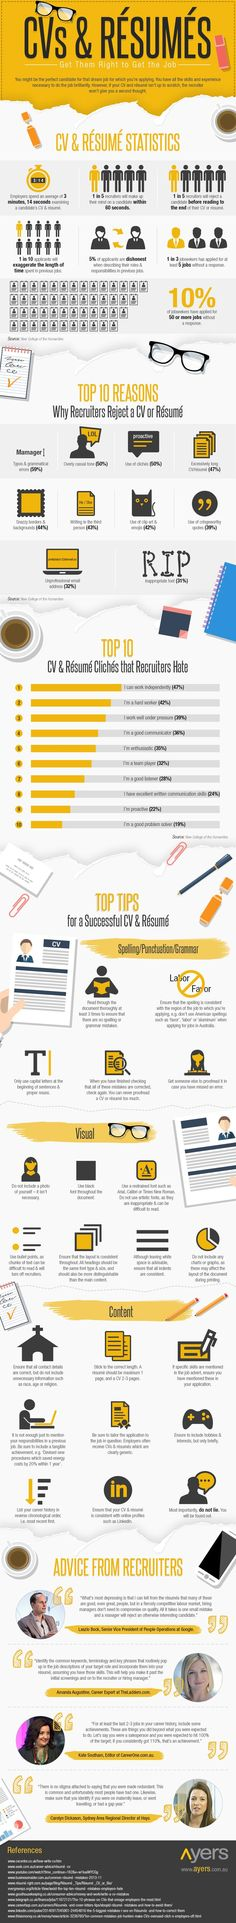 Image result for engineering professional cv sample RESUME\/CV - top 10 resume writing tips